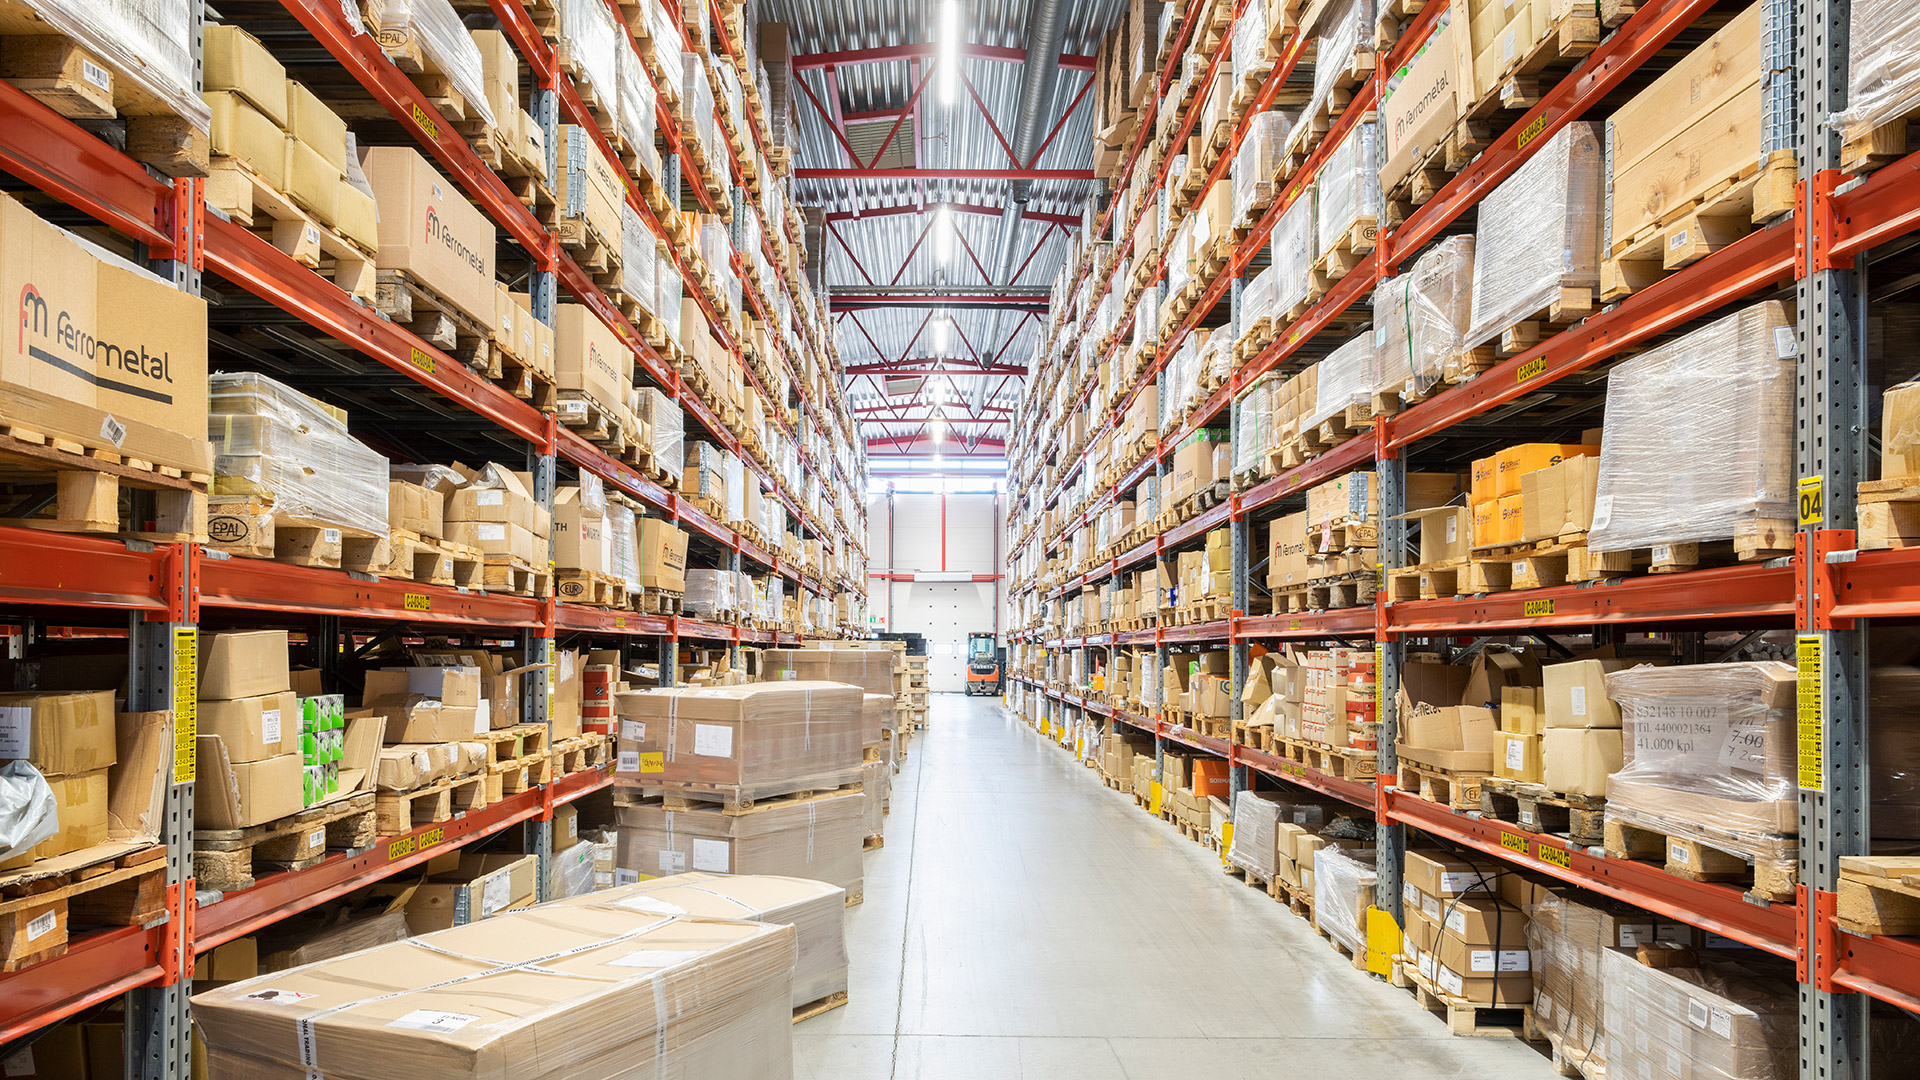 For the lighting systems of logistics halls, select optics that suit the narrow, tall aisles.